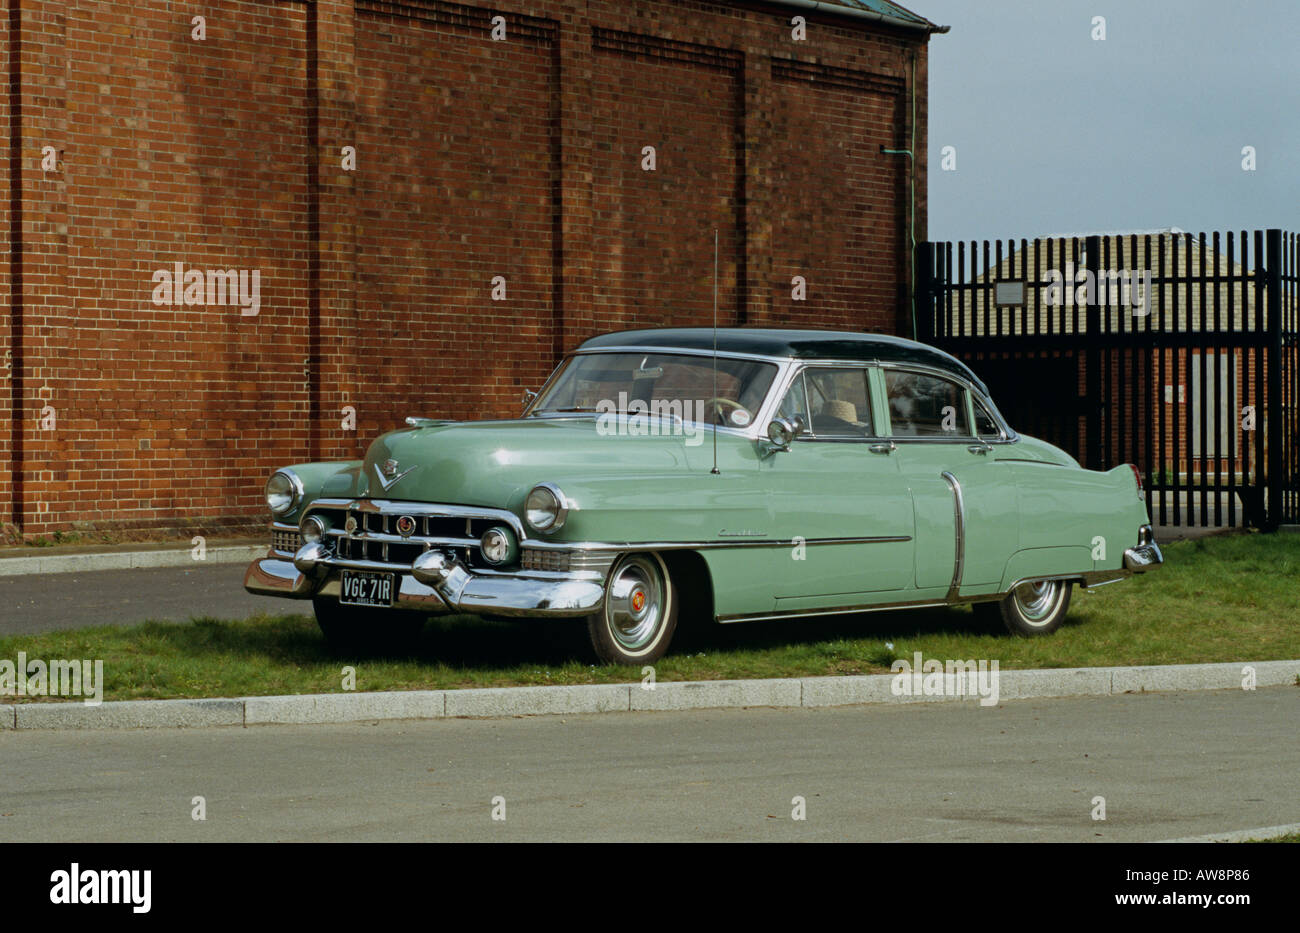 Images Cadillac Series 62 Stock Photos 1951 Coupe Sedan Of Image